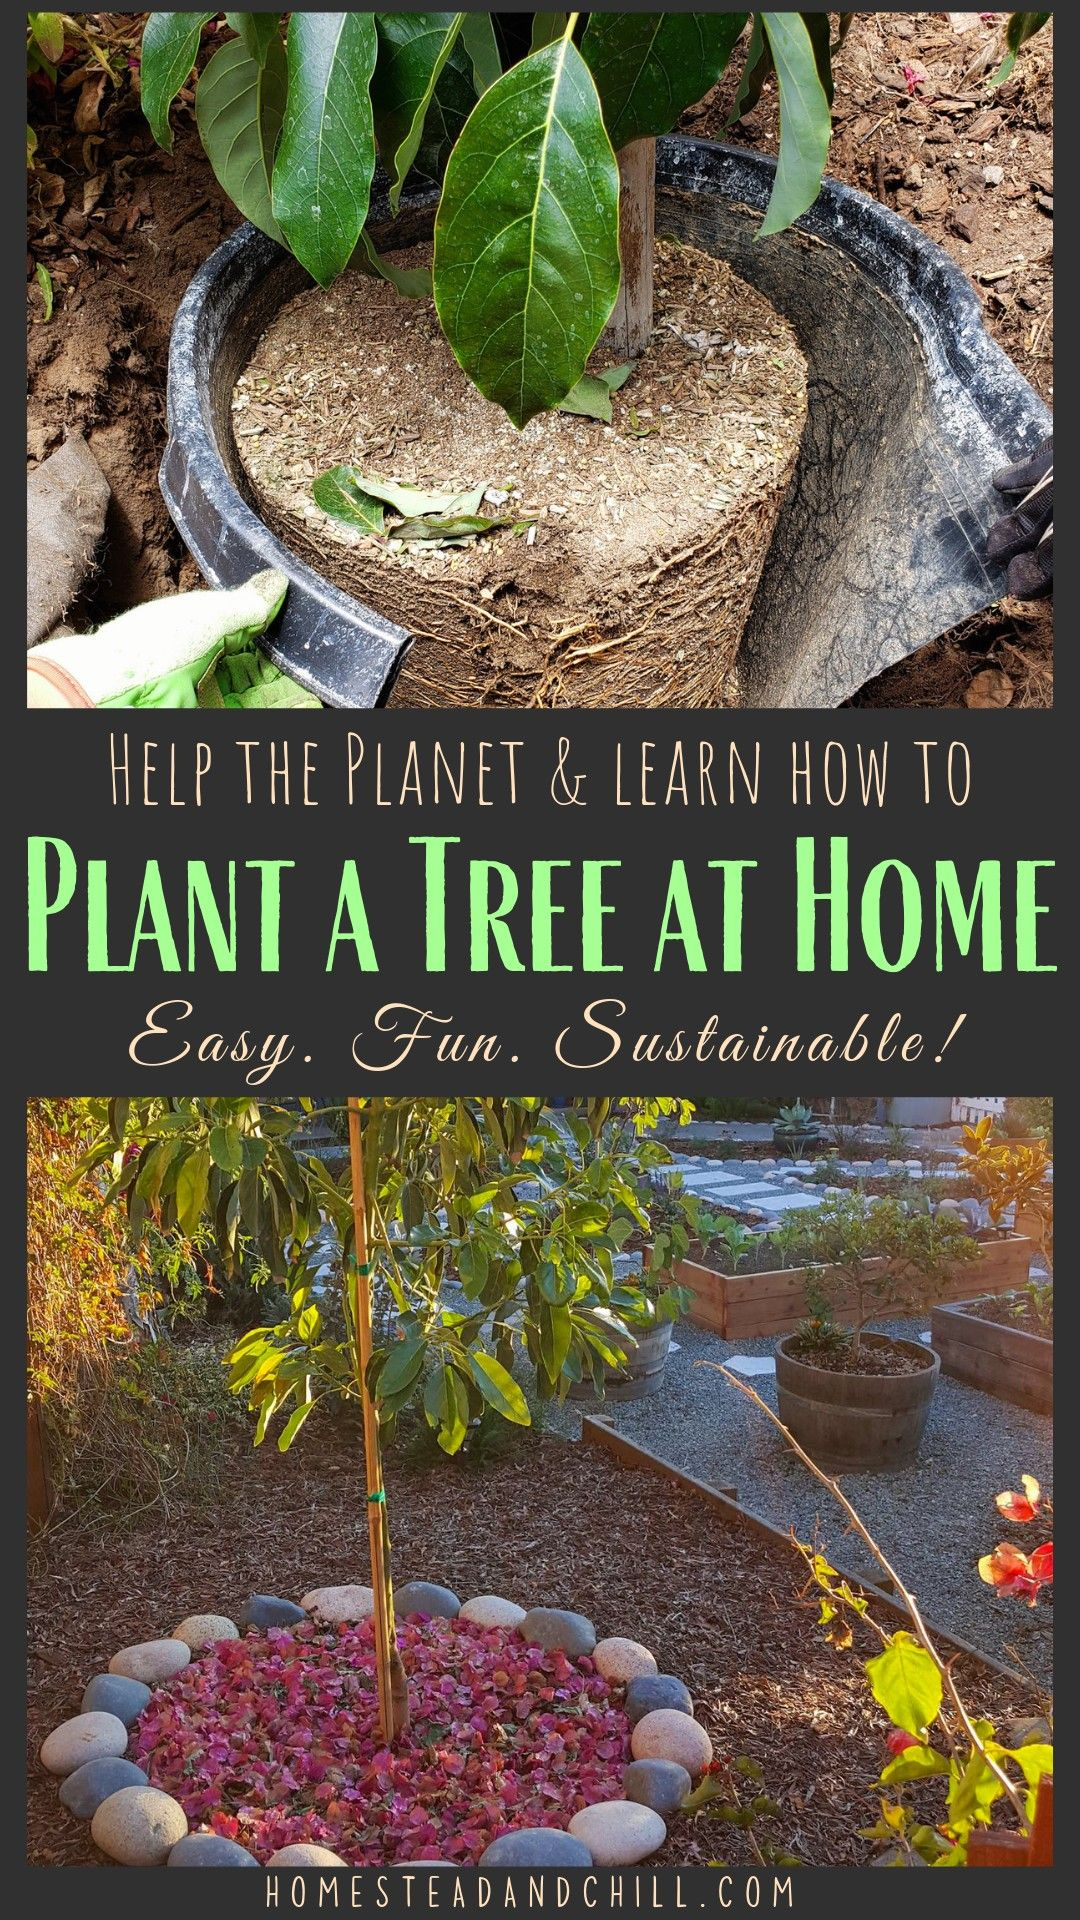 How to Plant a Tree Best Practices for Success Trees to